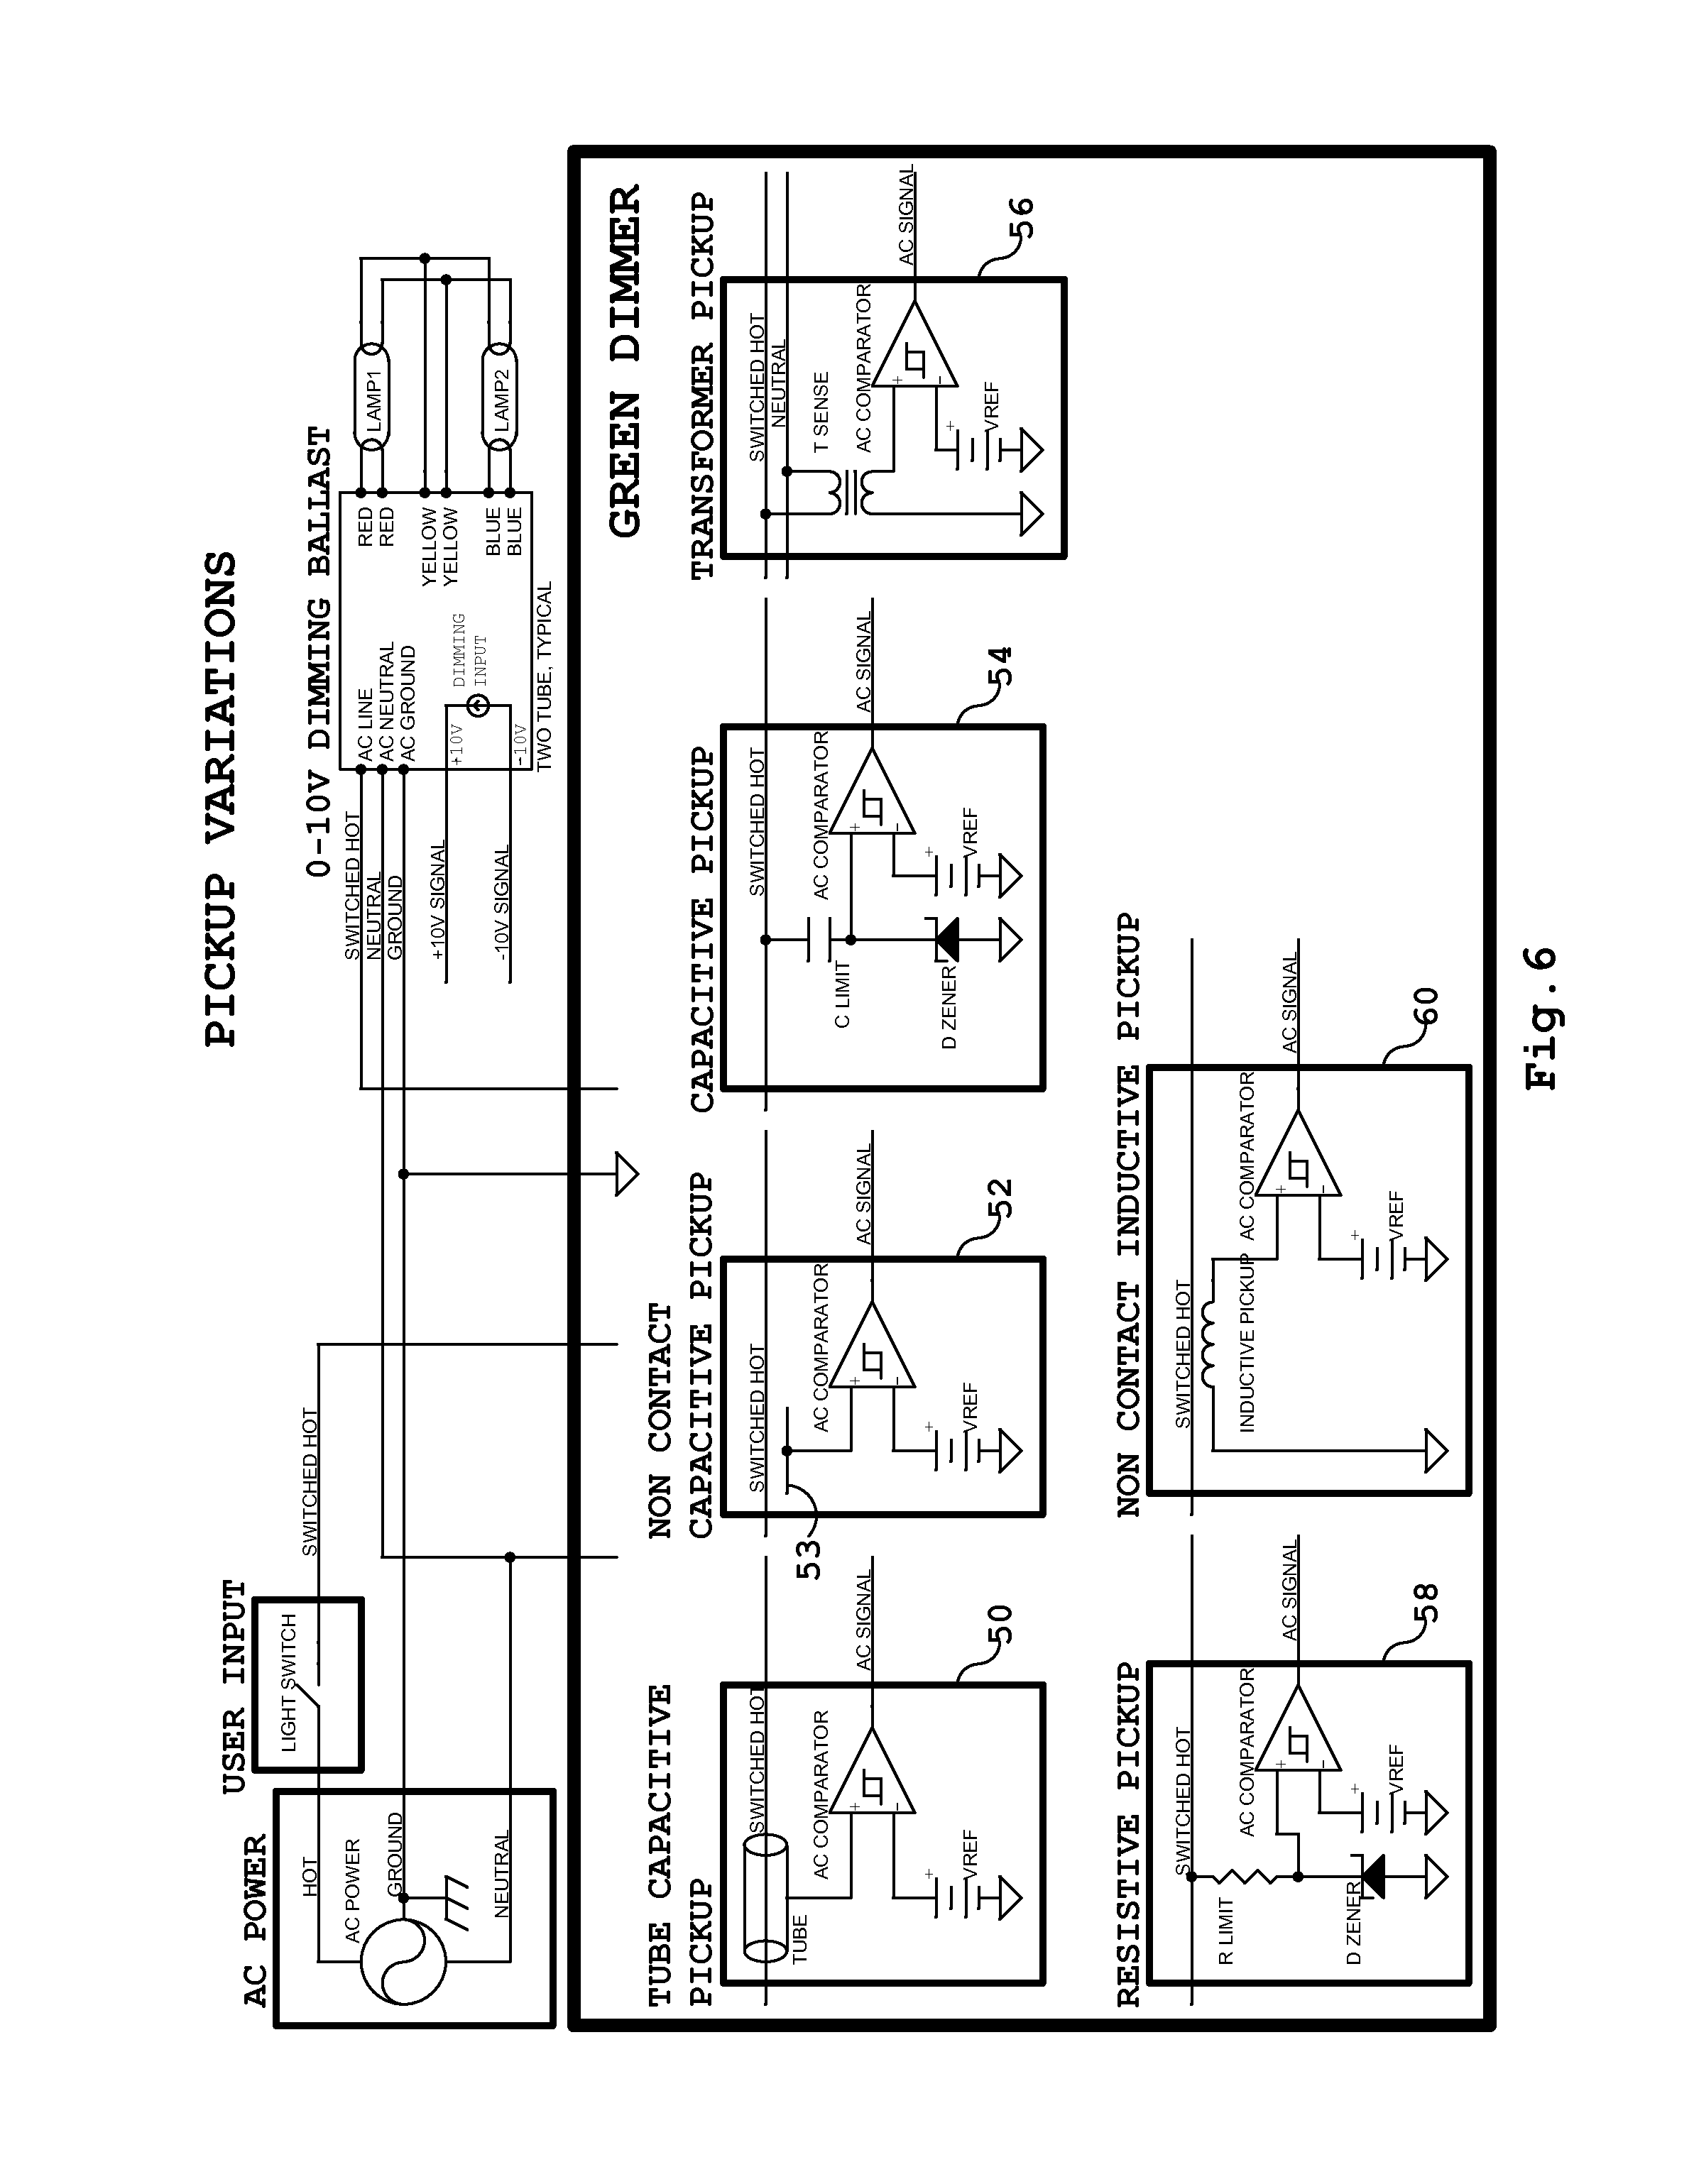 step dimming wiring diagram   27 wiring diagram images